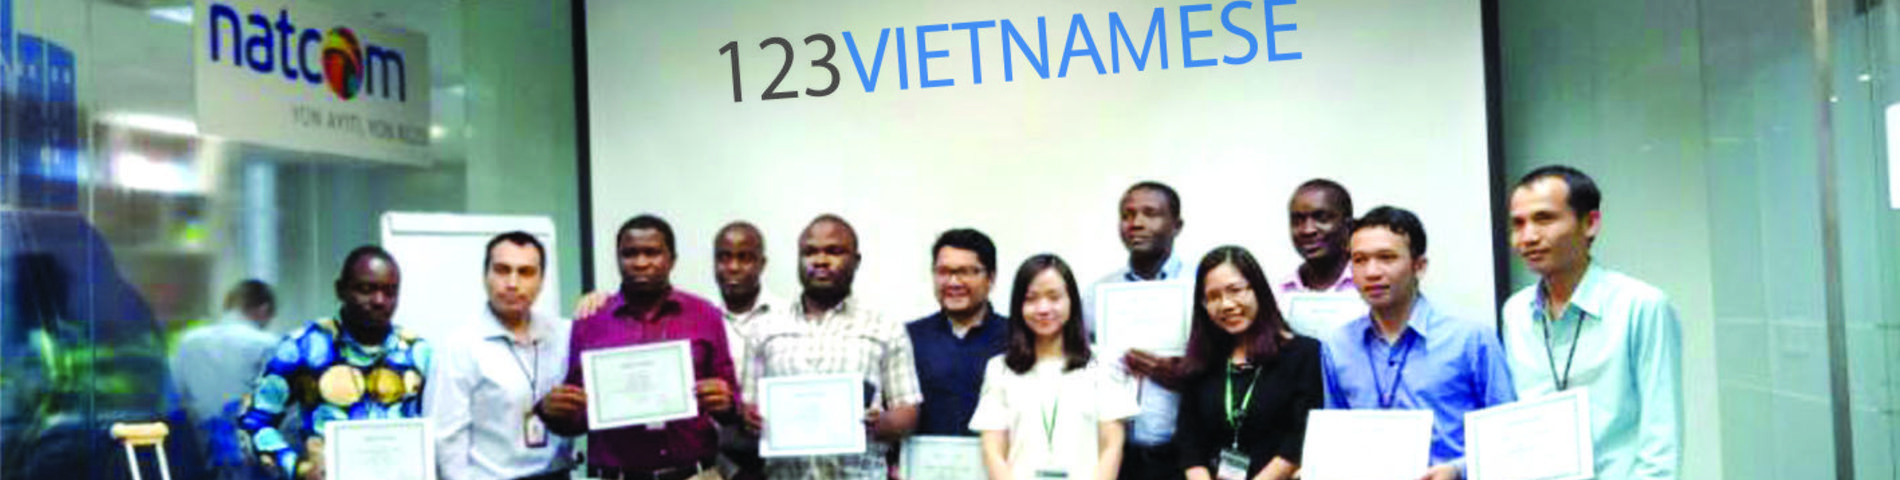 123 VIETNAMESE CENTER picture 1